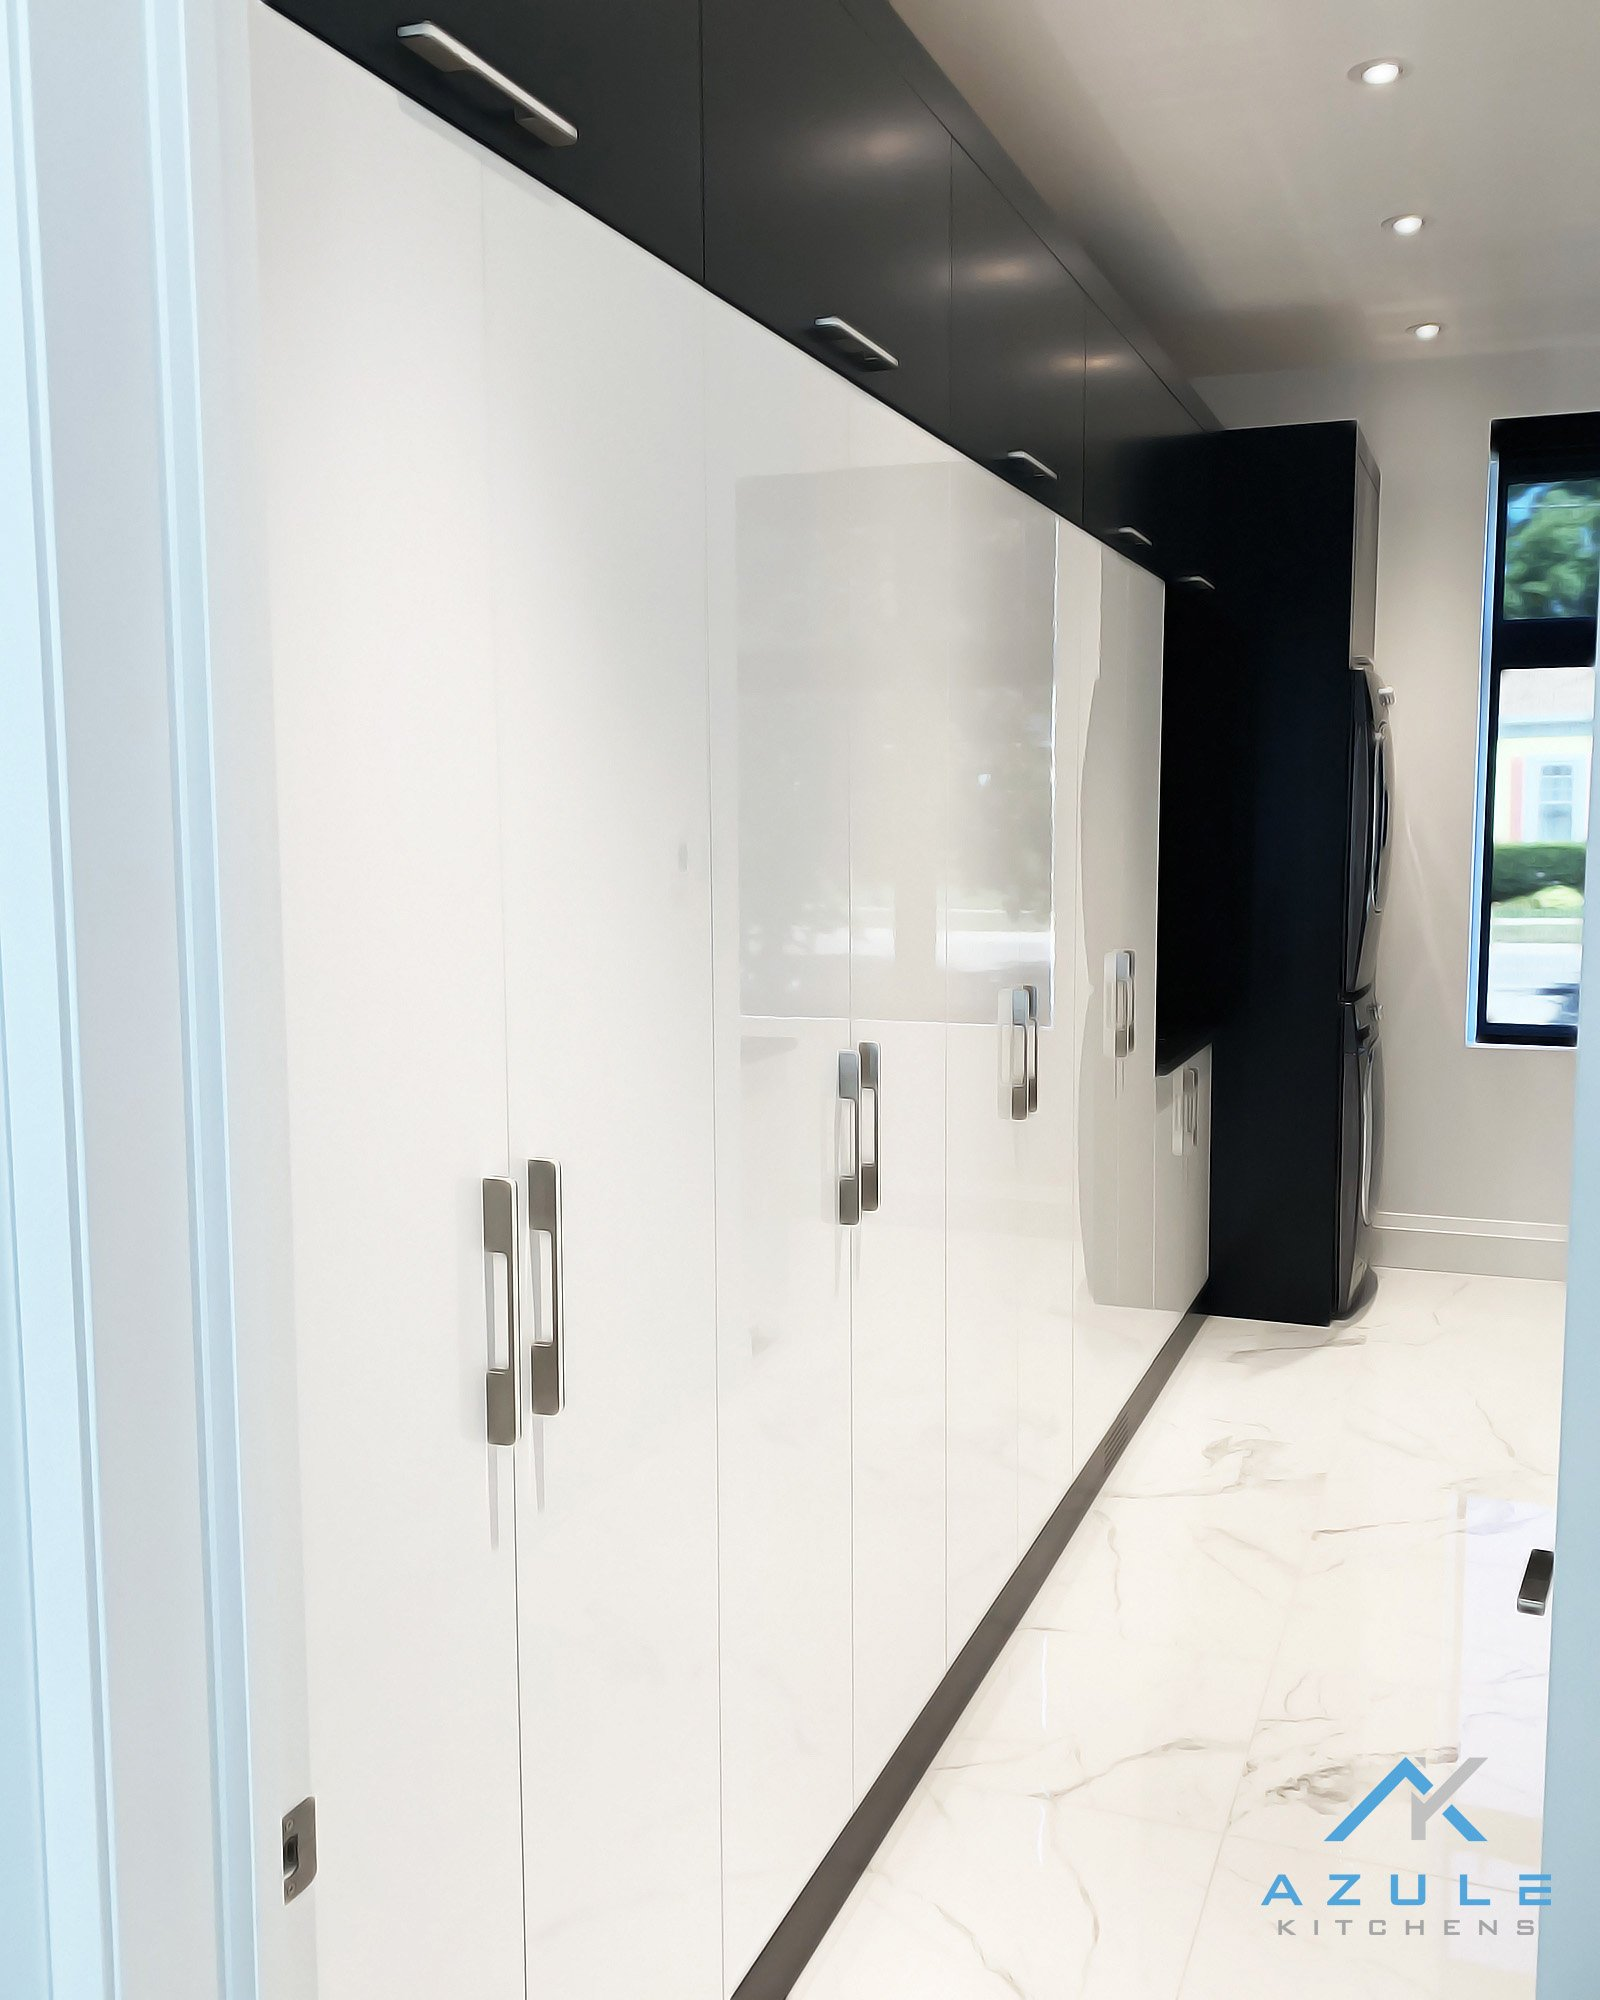 Azule Kitchens Modern Walk In Closet High Gloss With Washer And Dryer